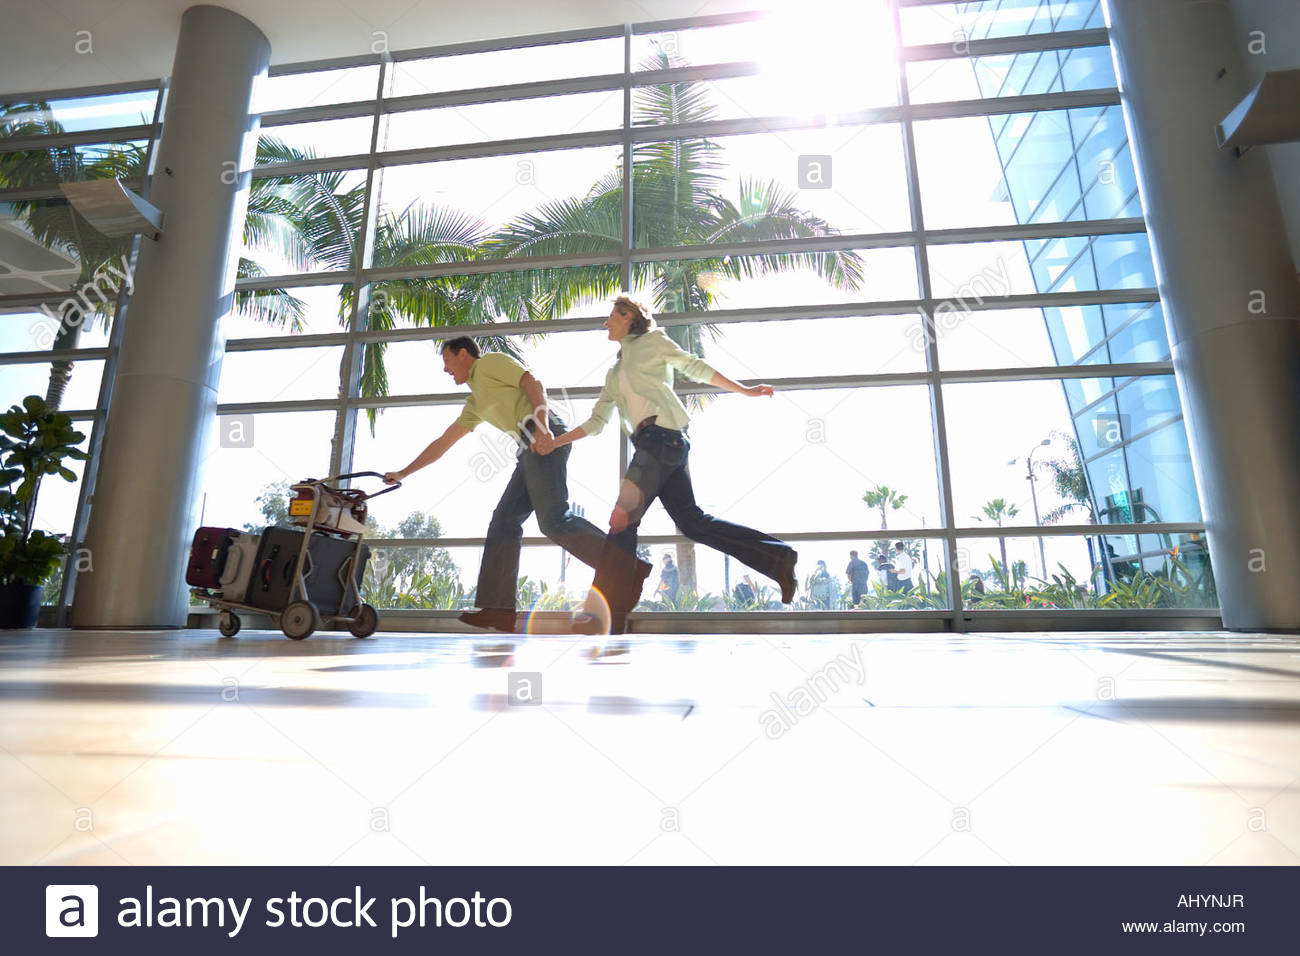 Couple running through airport with luggage trolley in tow, man leading, holding hands, smiling, side view surface - Stock Image